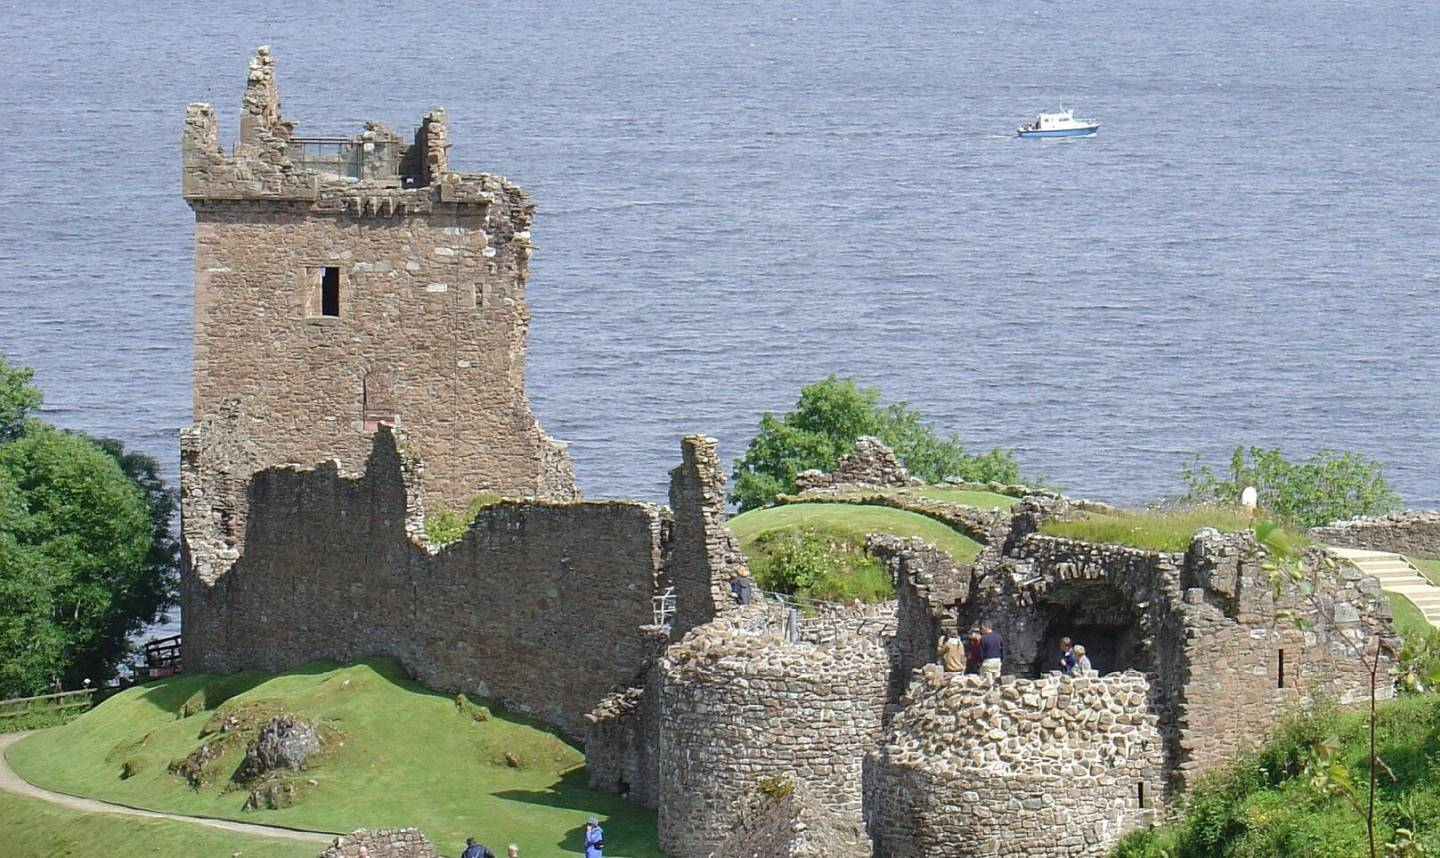 Must see in the Highlands, Urquhart Castle